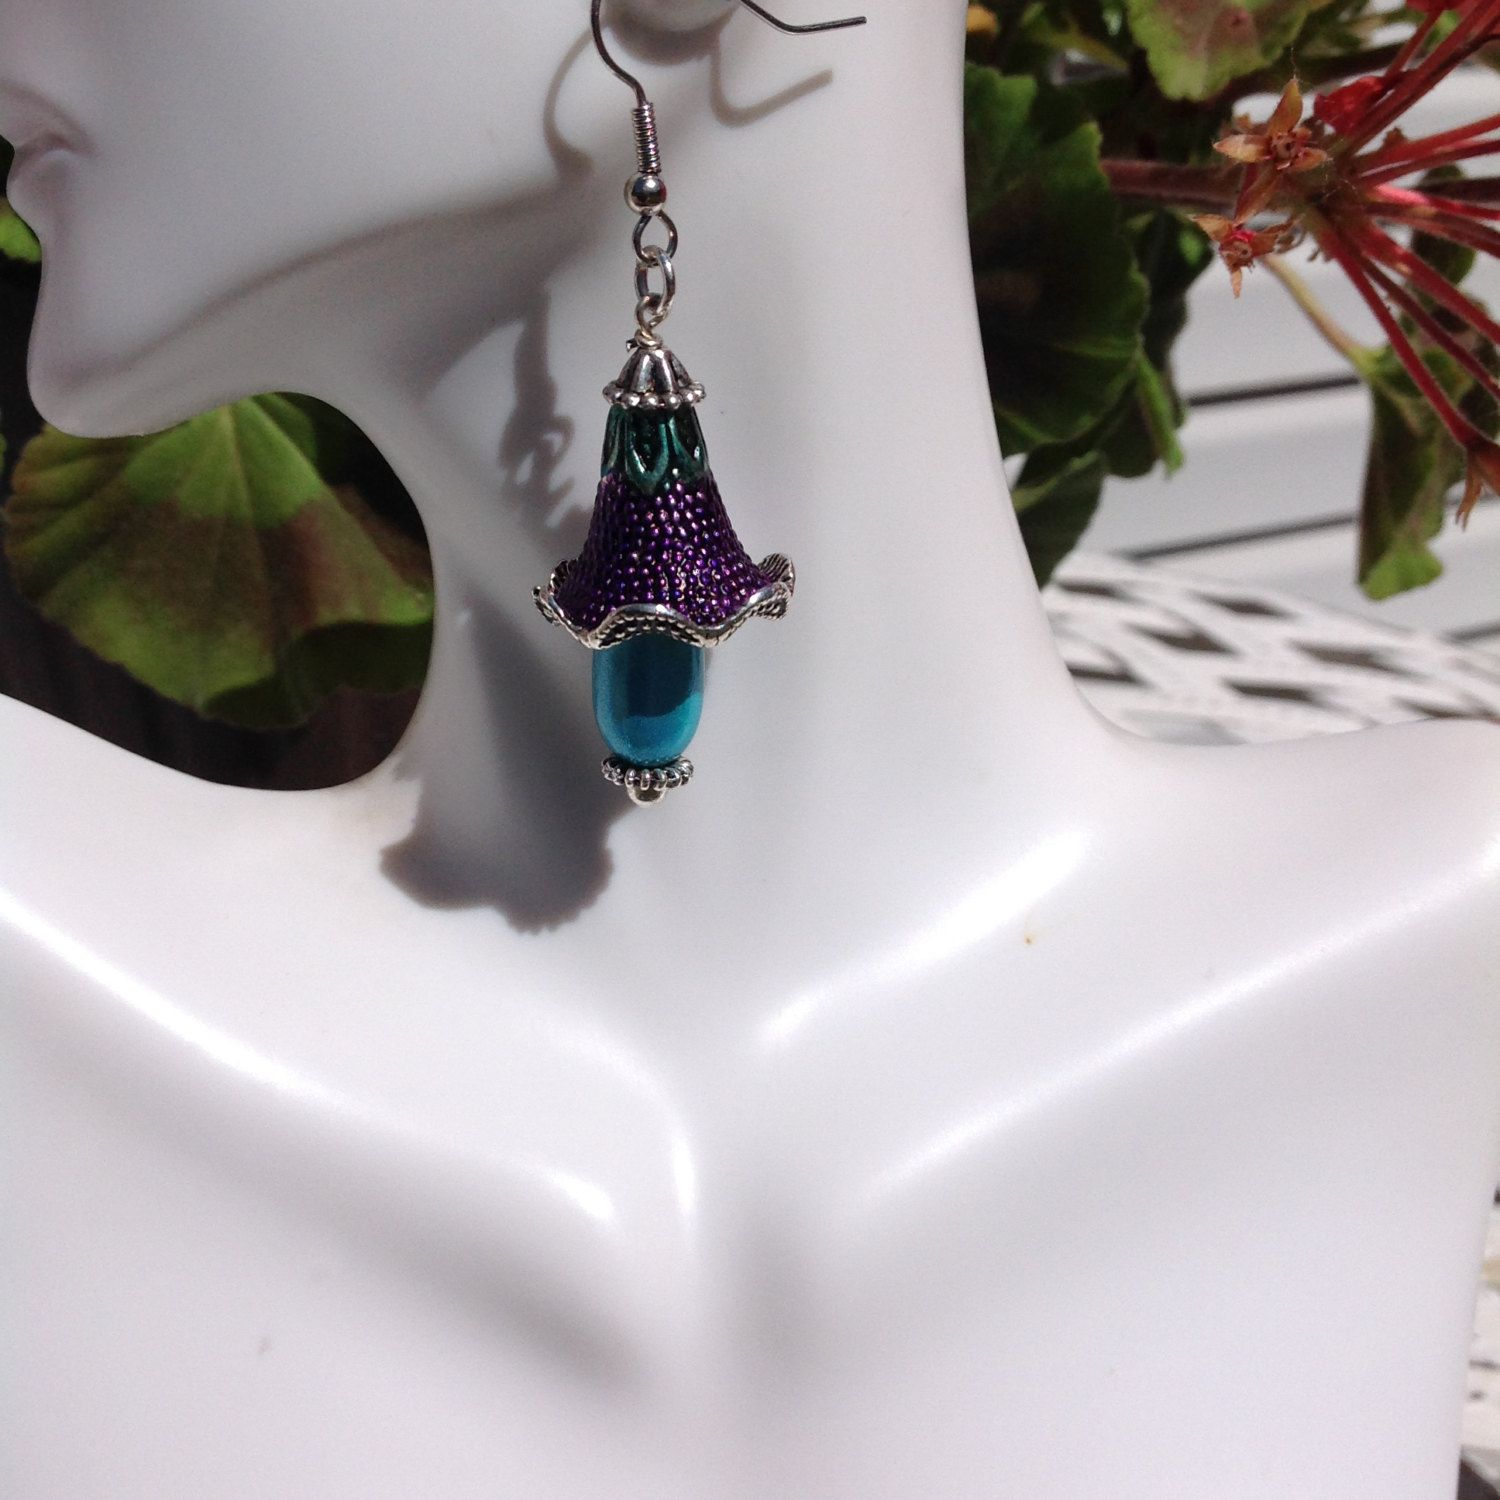 BOHO Handpainted and SEAGLASS Earrings by OhayoMtnDesigns on Etsy